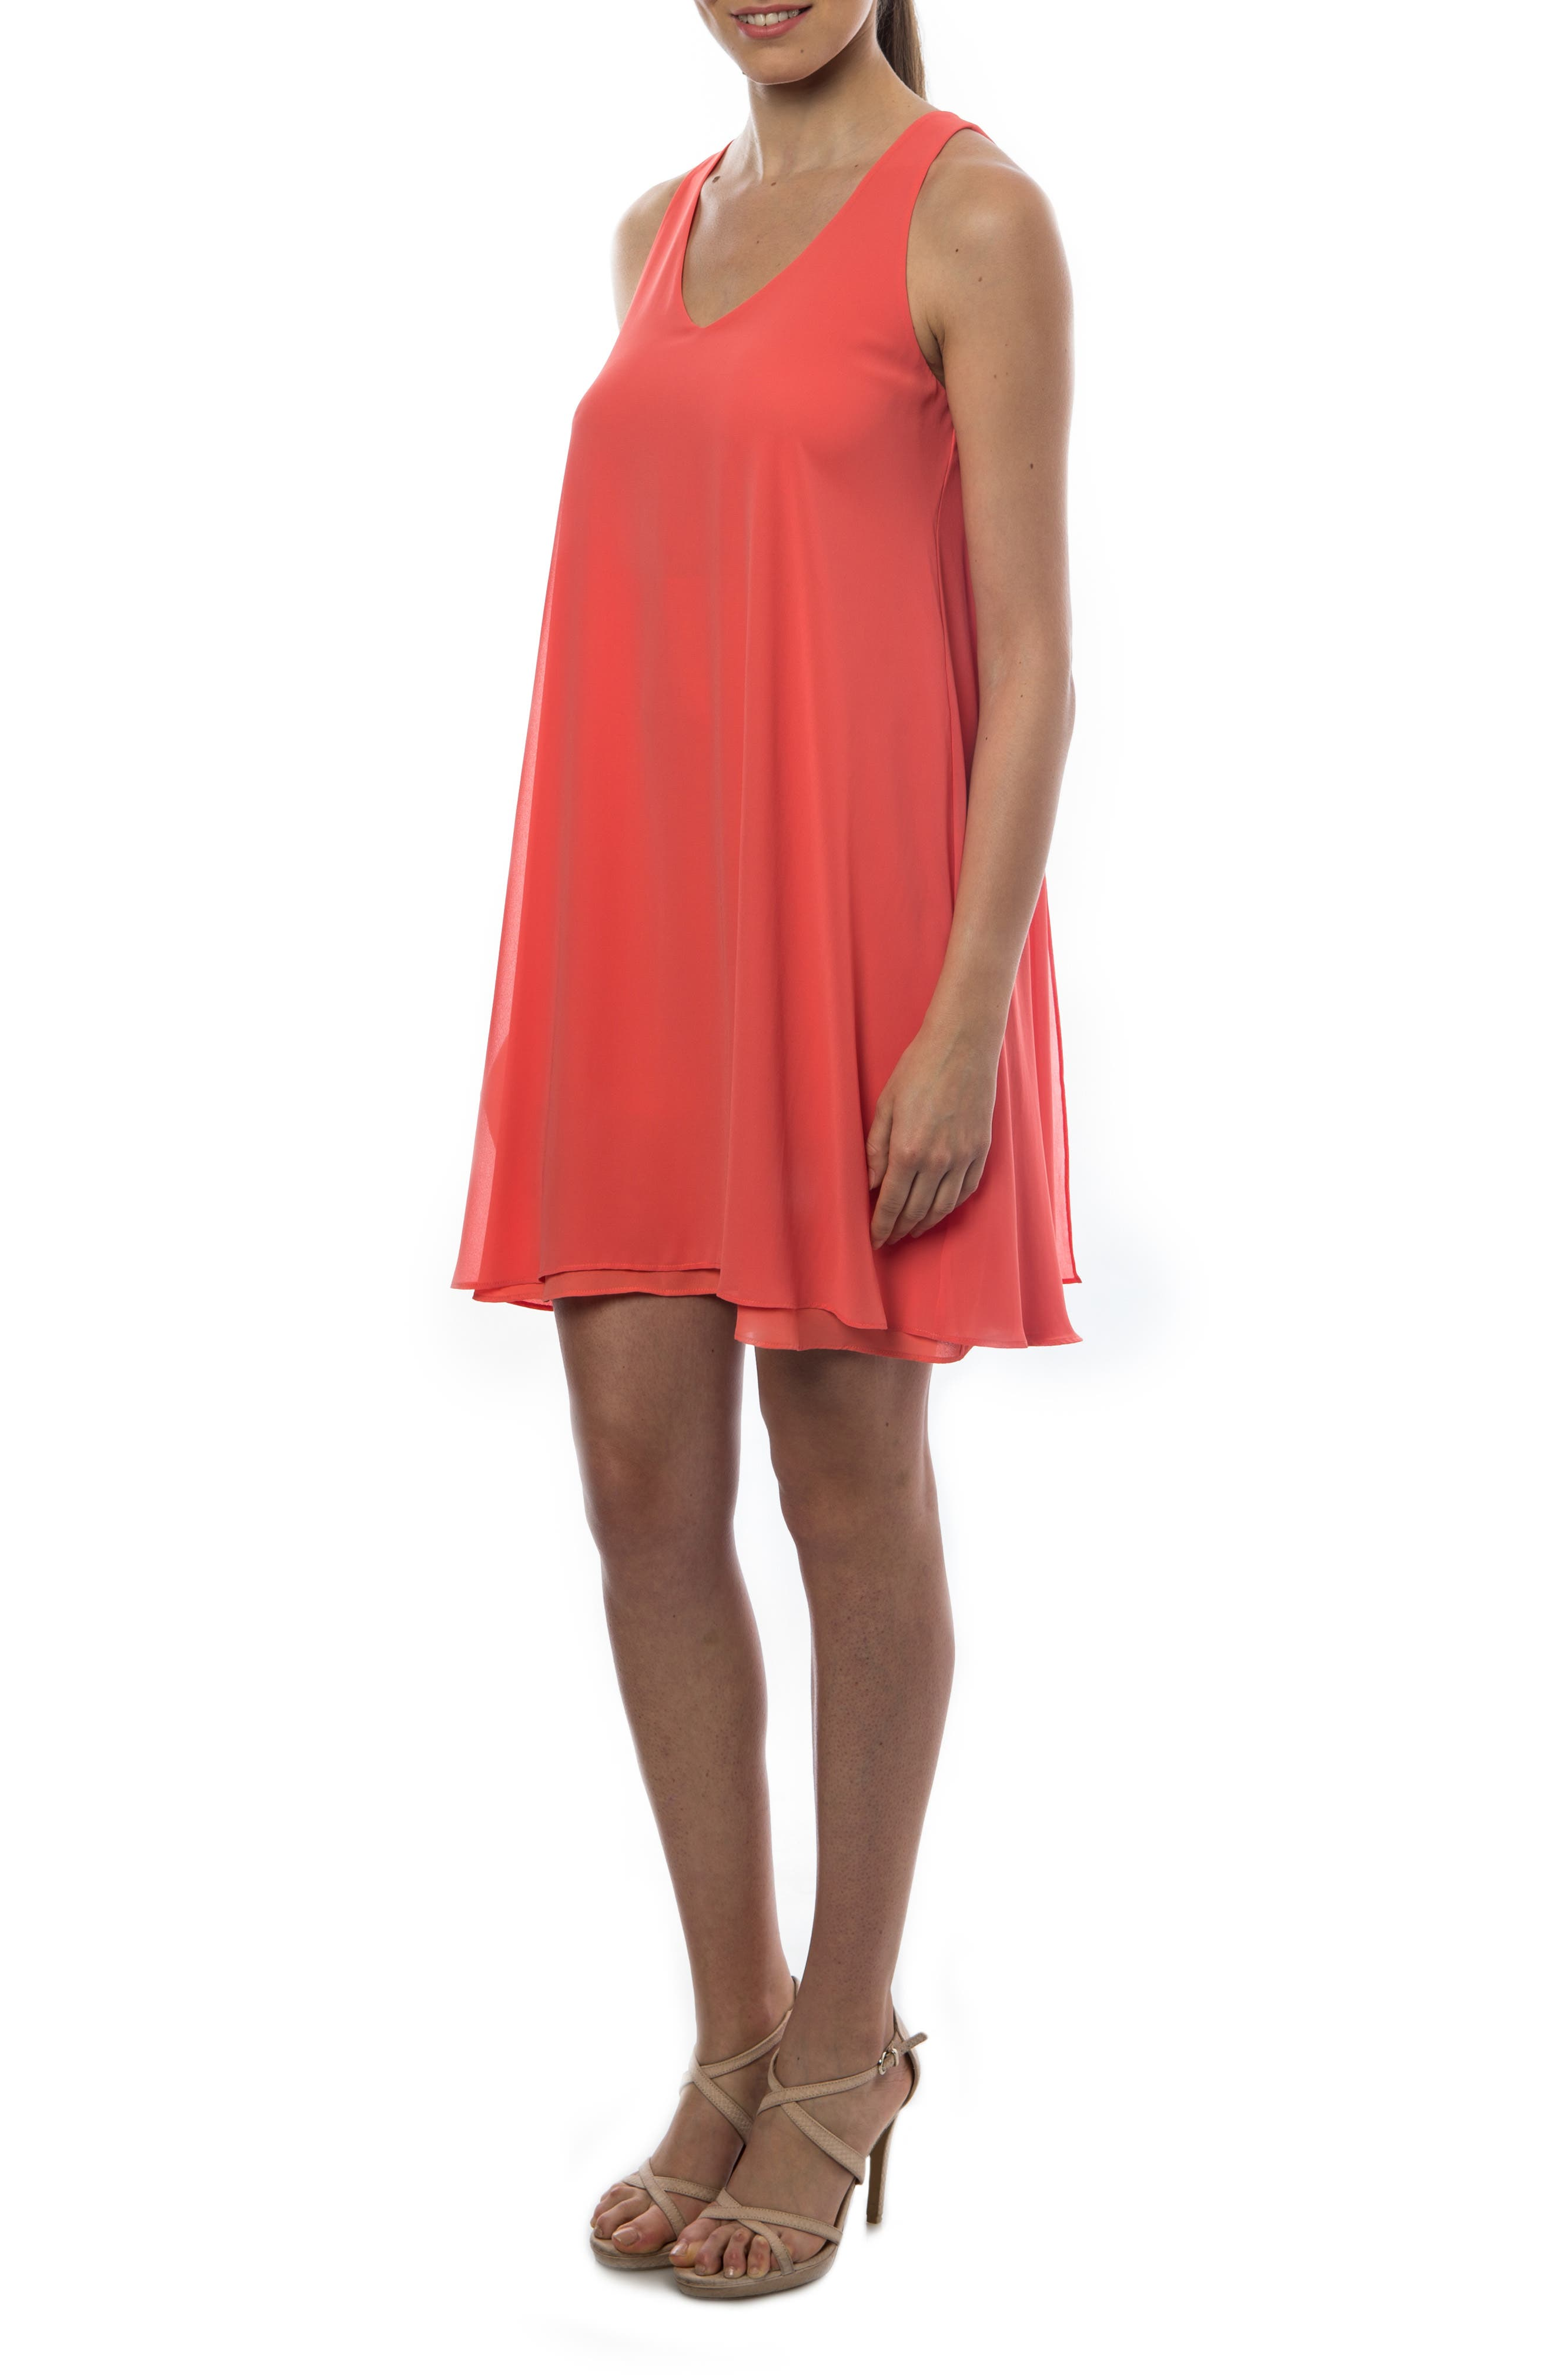 PIETRO BRUNELLI, 'Lago Di Como' High/Low Maternity Dress, Main thumbnail 1, color, ANEMONE/ CORAL